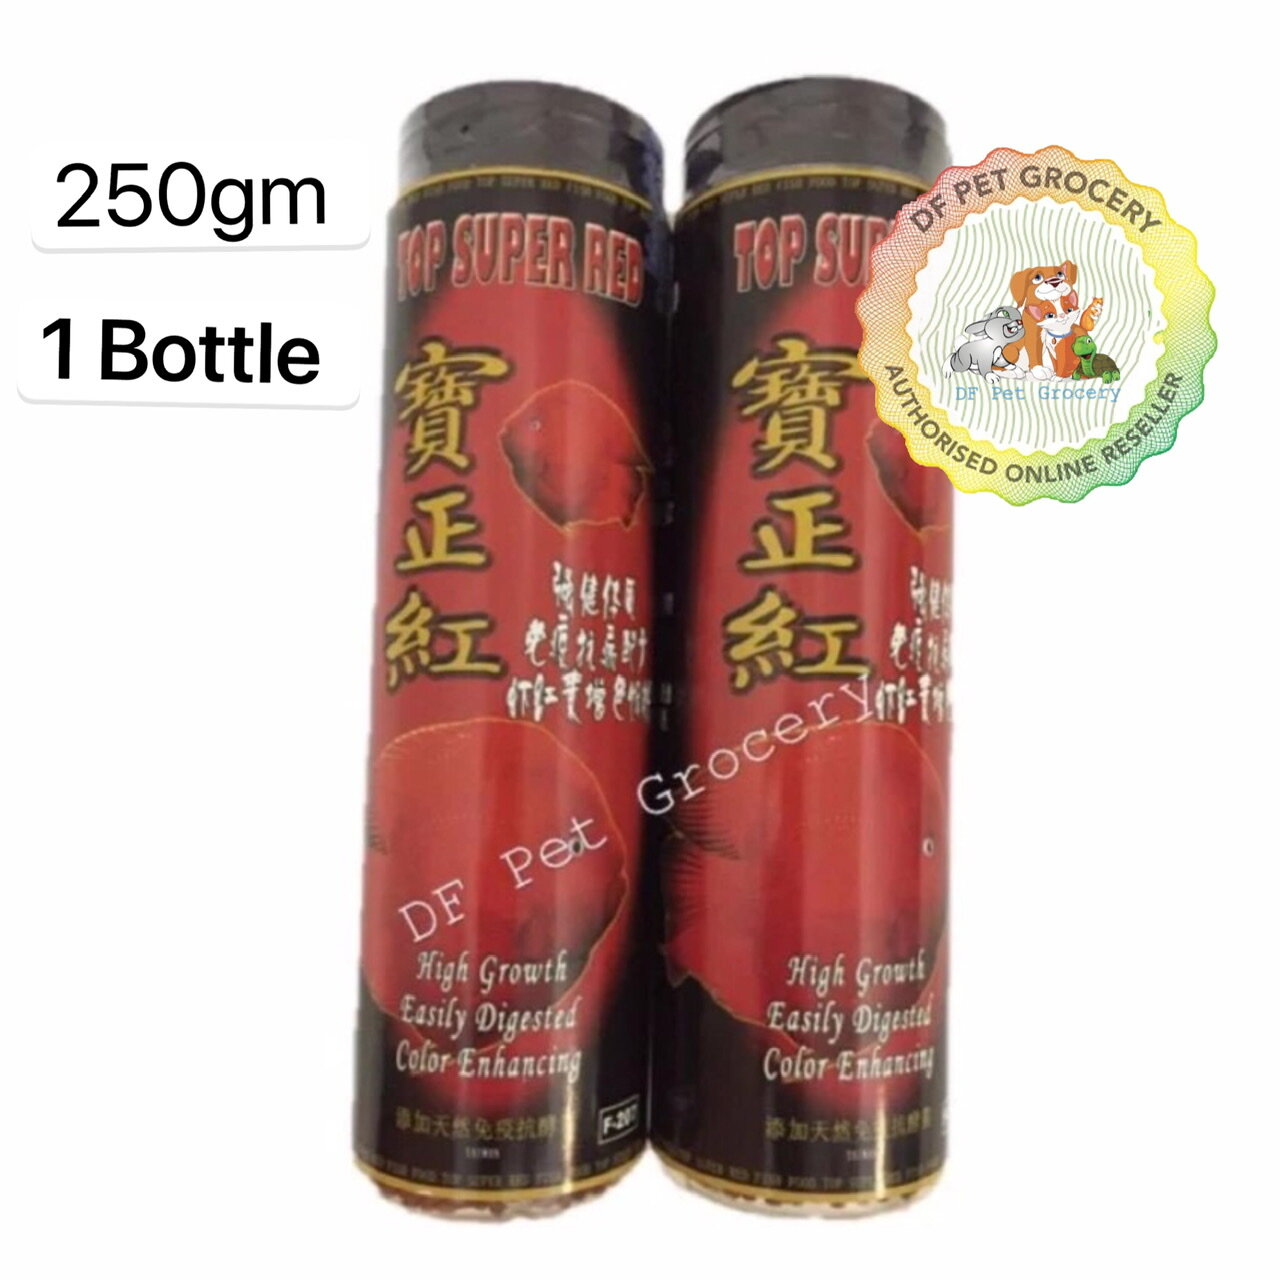 Top Super Red Fish Food  250gm X 1 Bottle - Fish Food